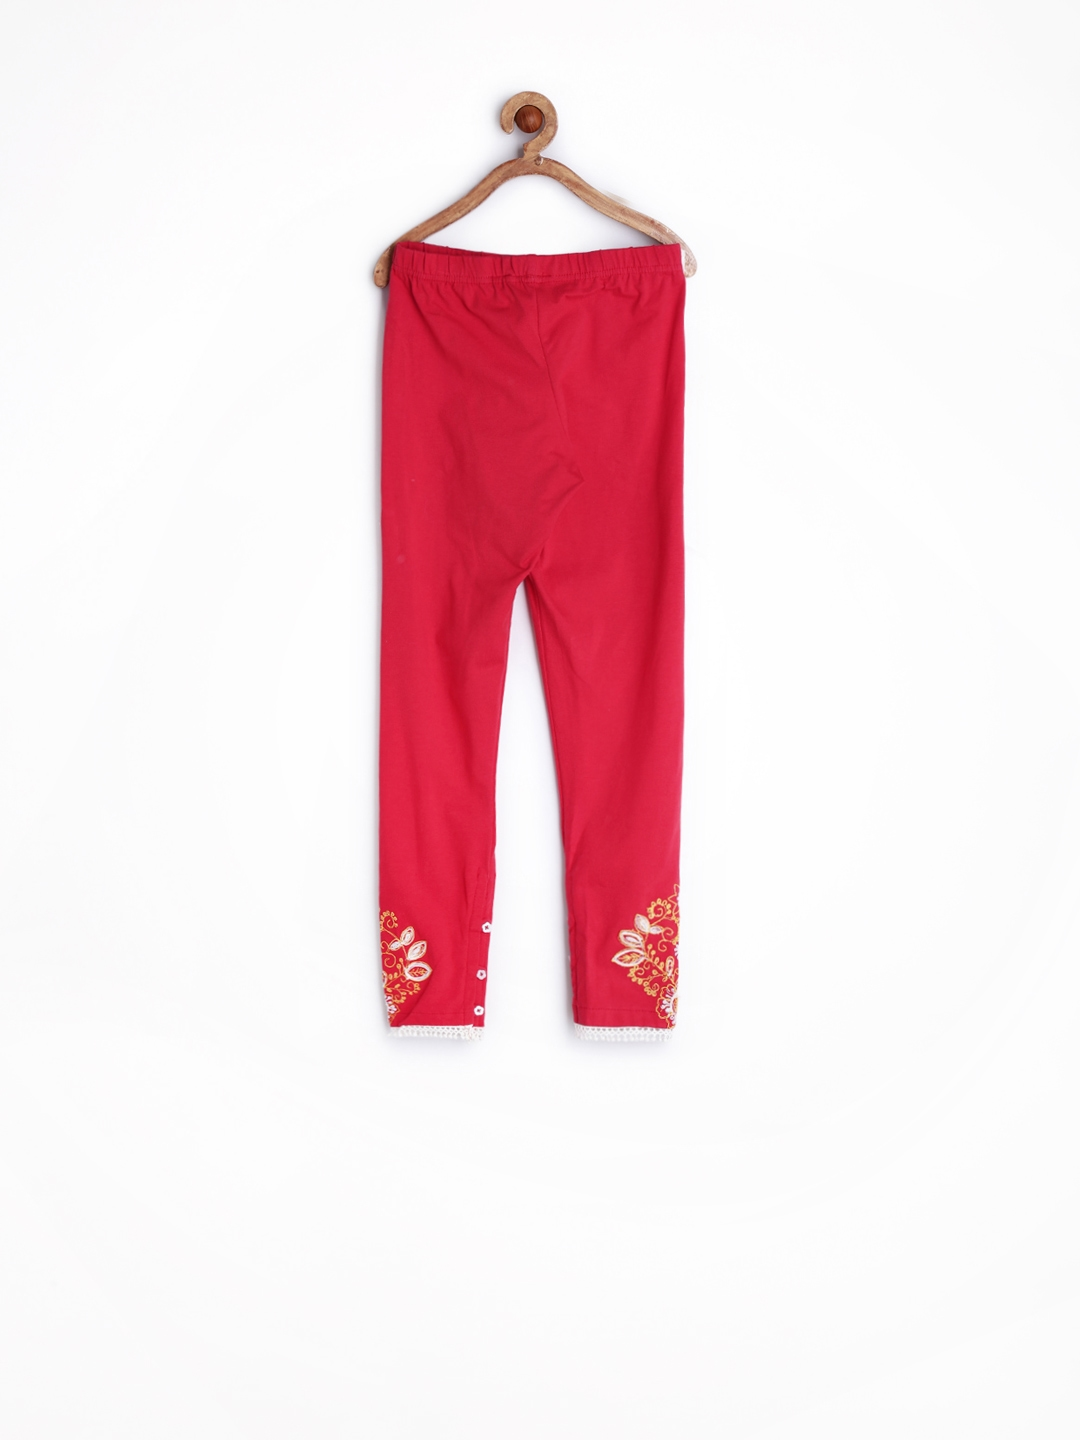 476f0bfc9bbd4 Buy BIBA Girls Red Leggings - Leggings for Girls 696659 | Myntra